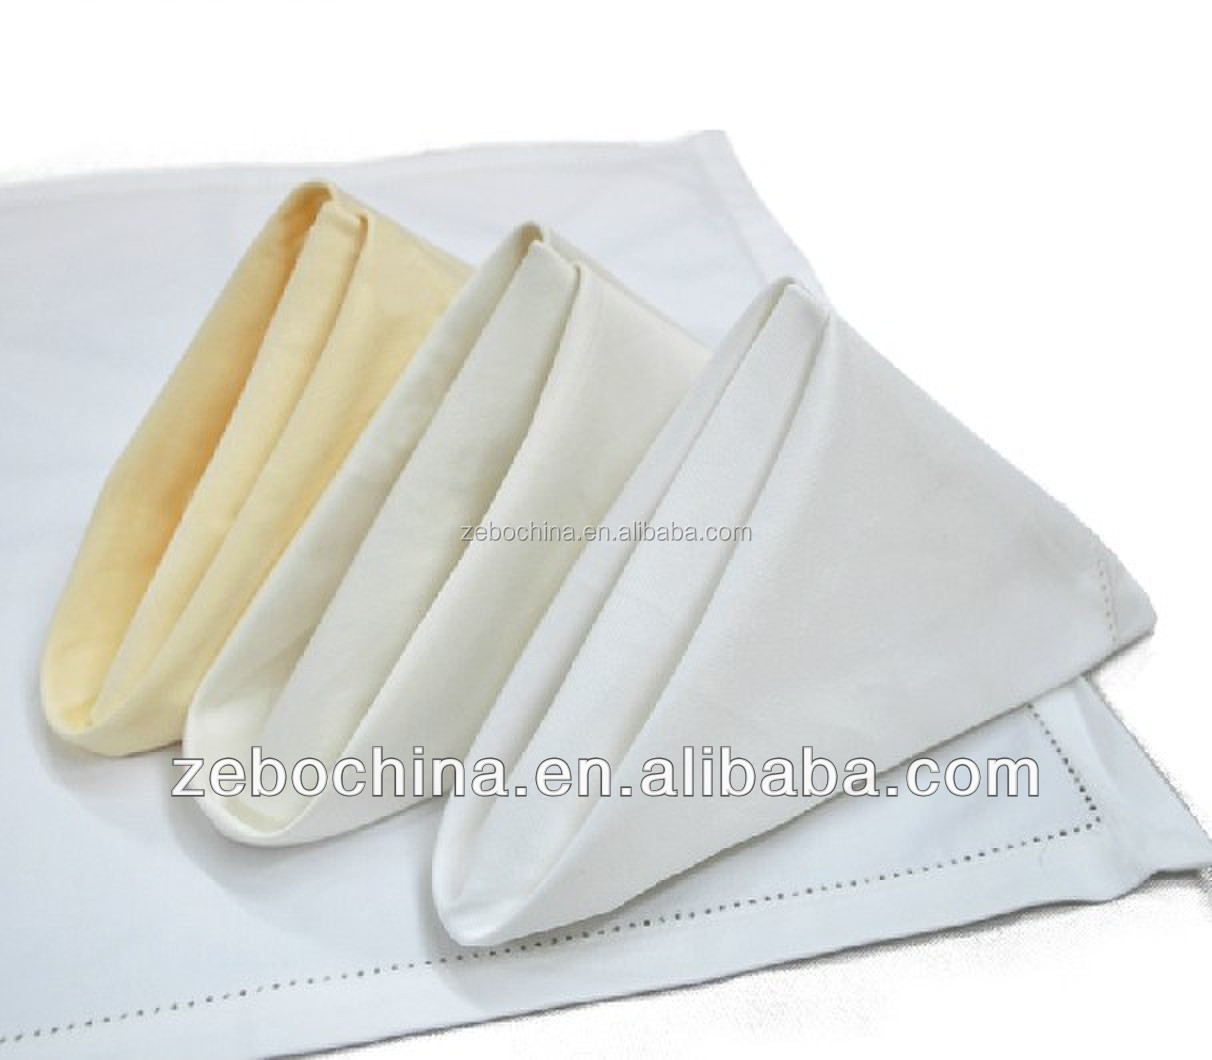 Hot selling design direct factory made luxury wholesale cotton hotel dinner napkins linen